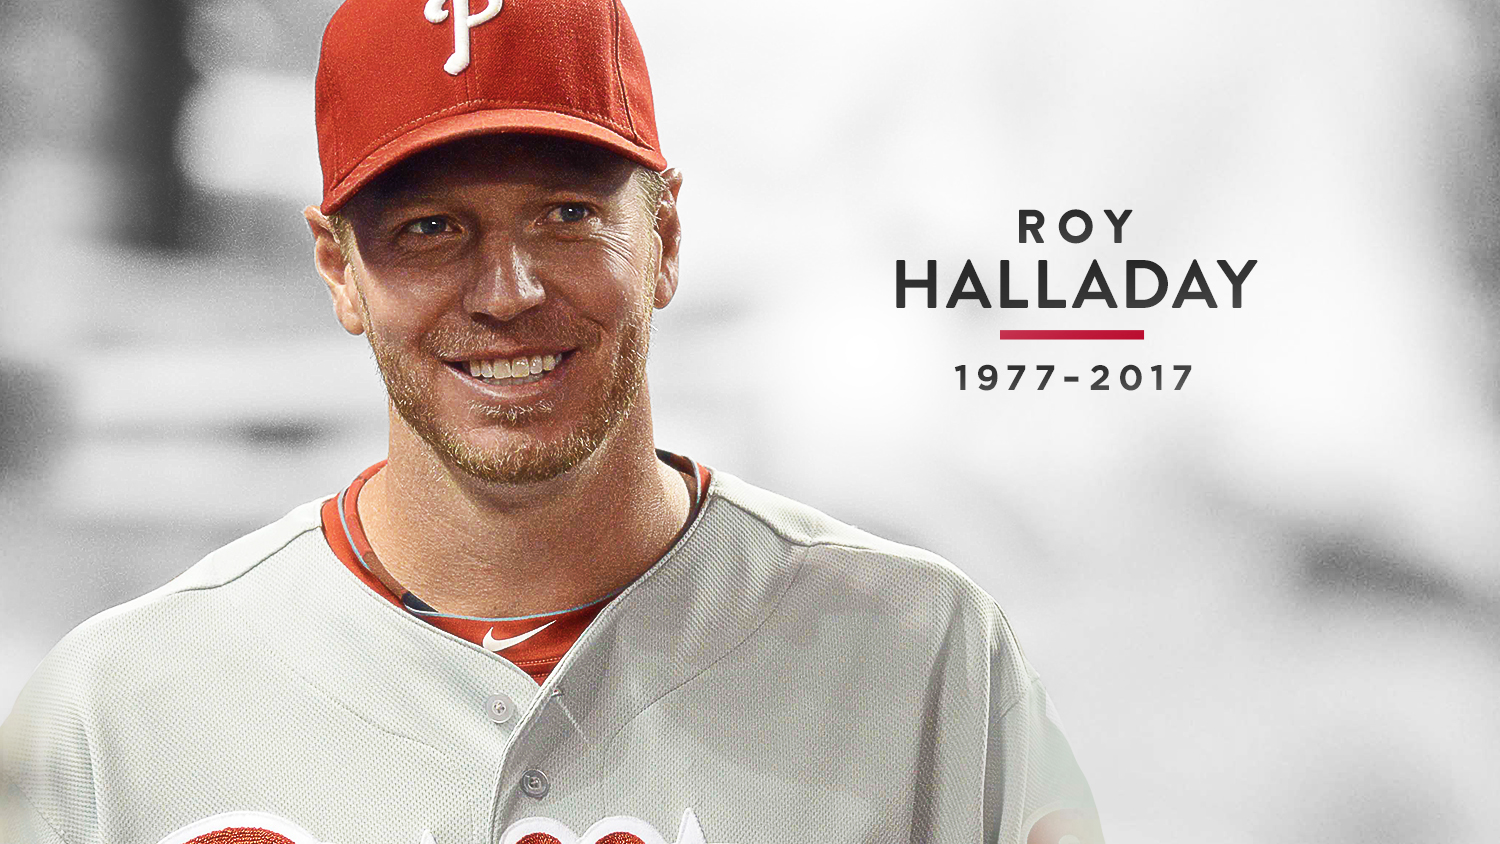 Roy Halladay dead at 40 after Plane Crash